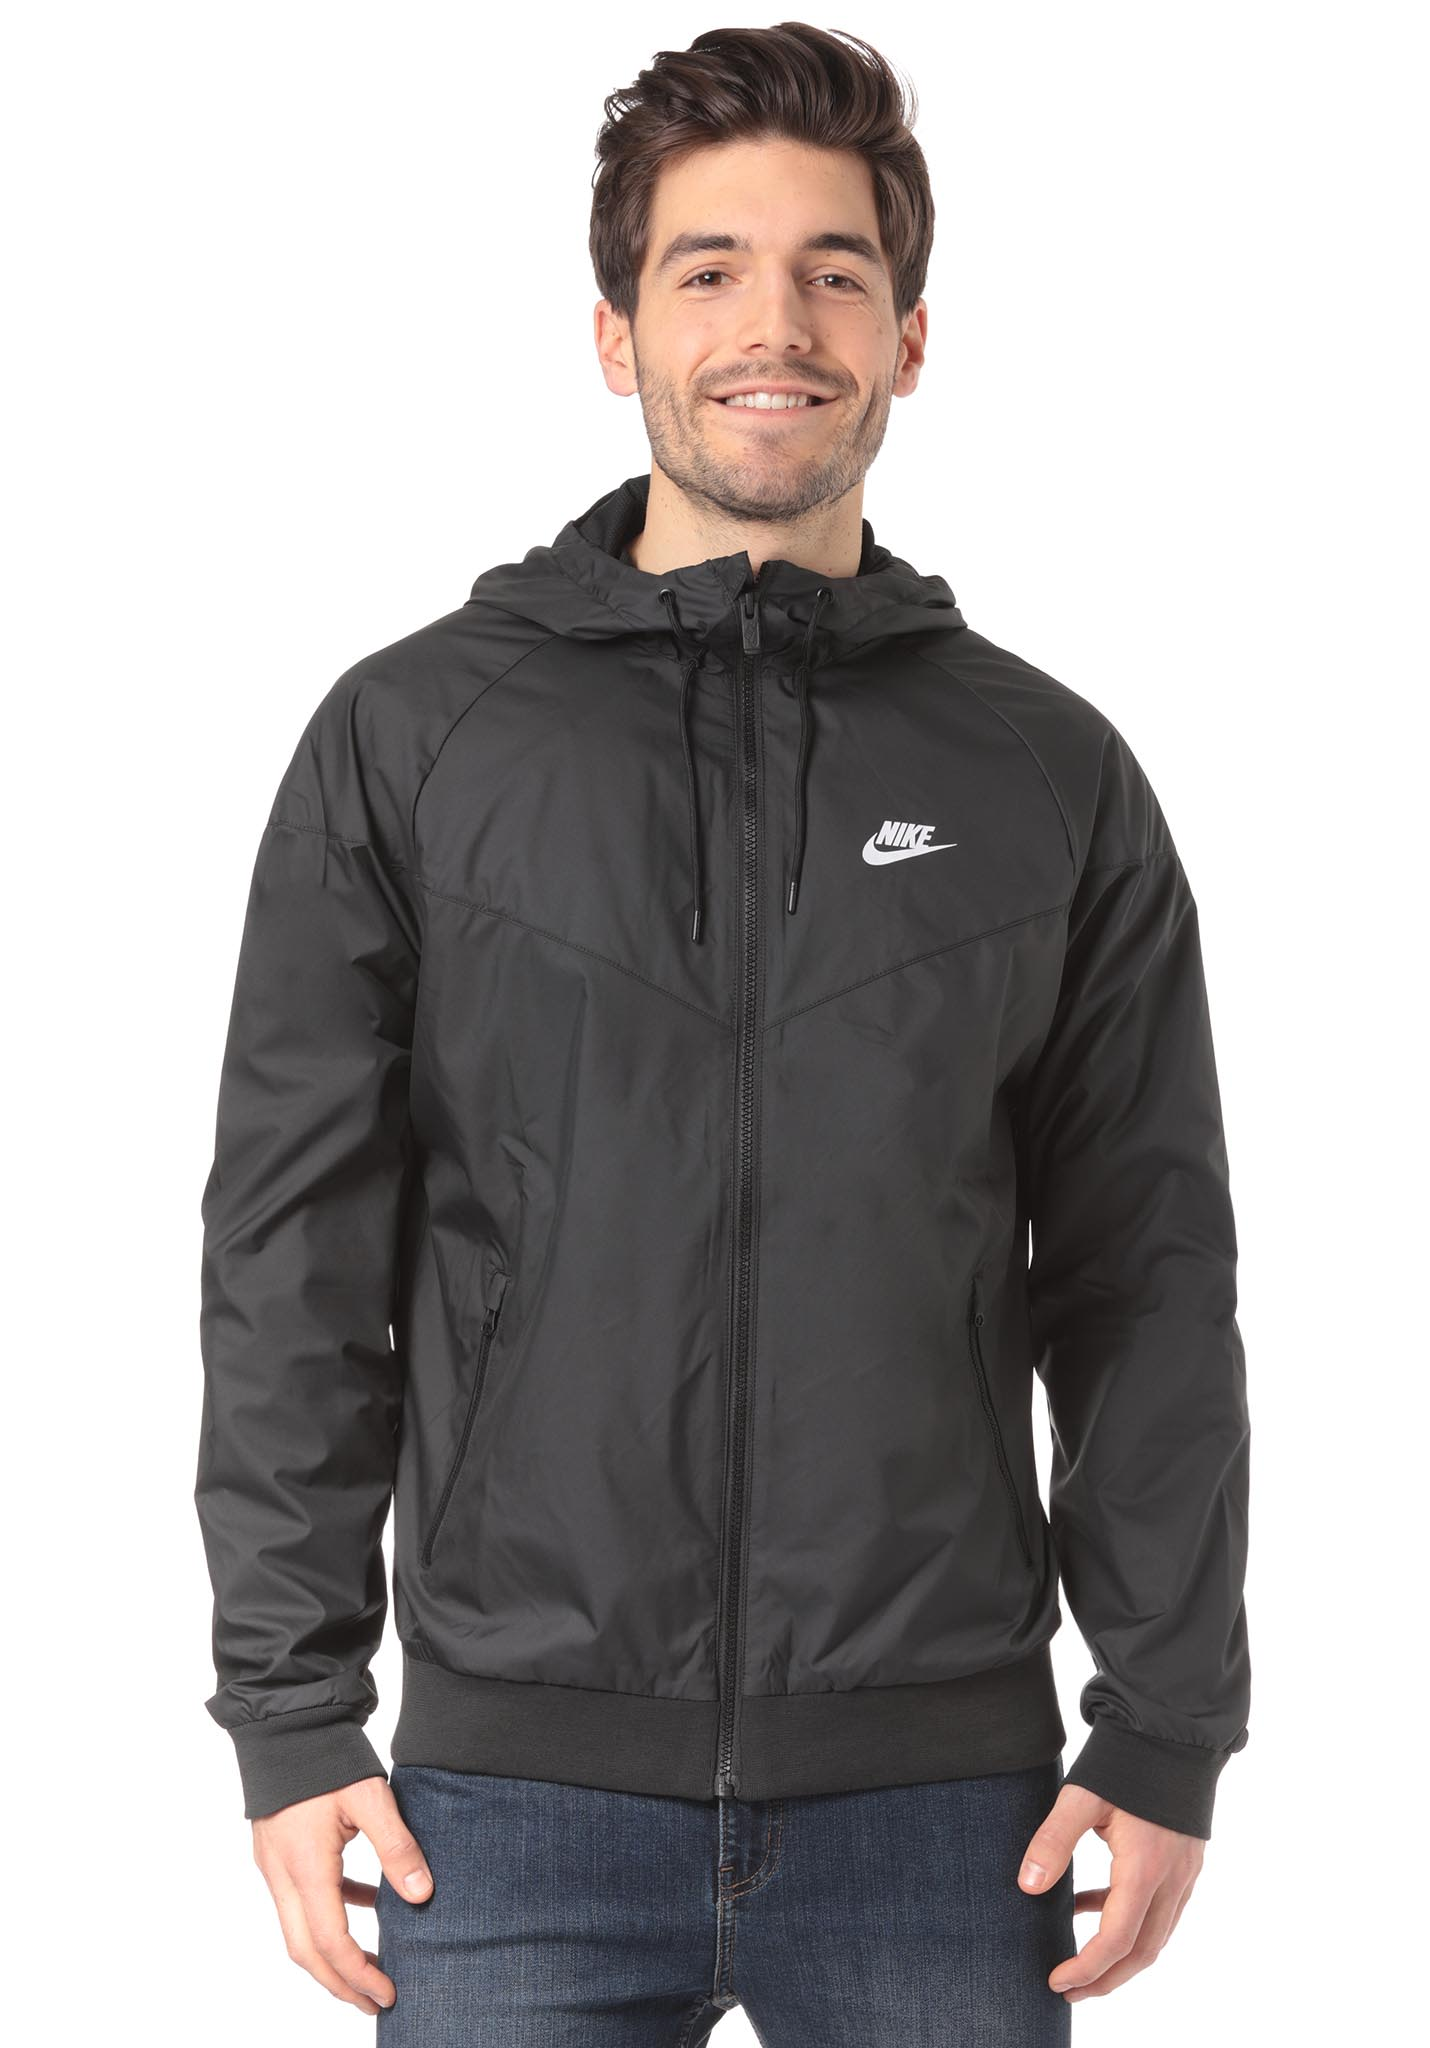 NIKE SPORTSWEAR Windrunner - Jacket for Men - Black - Planet Sports 97bcf00a9